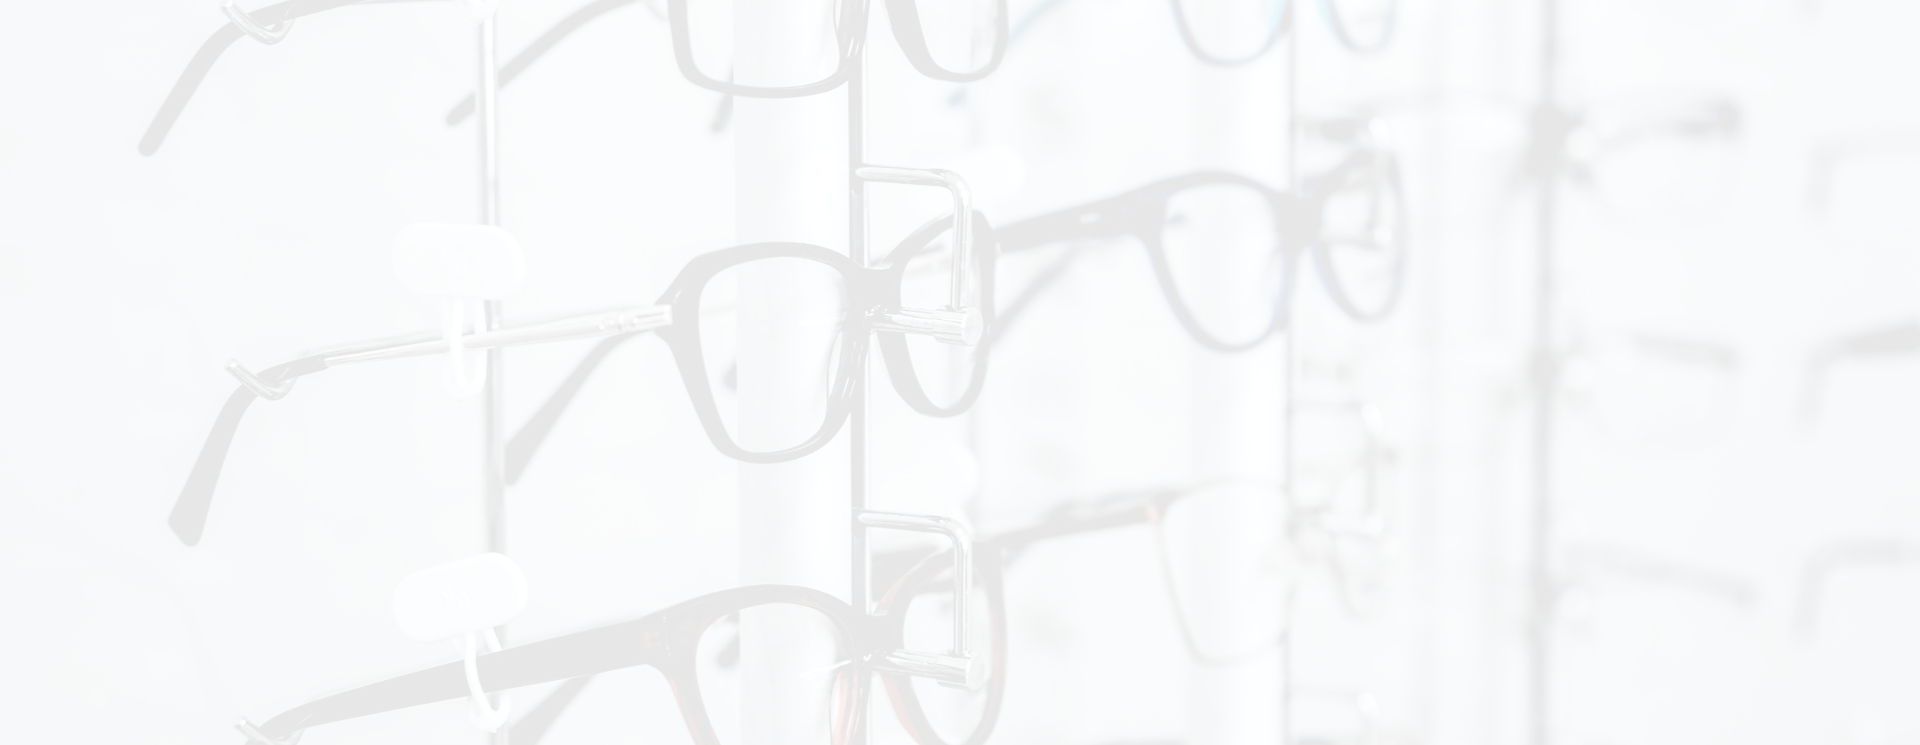 Glasses with white overlay